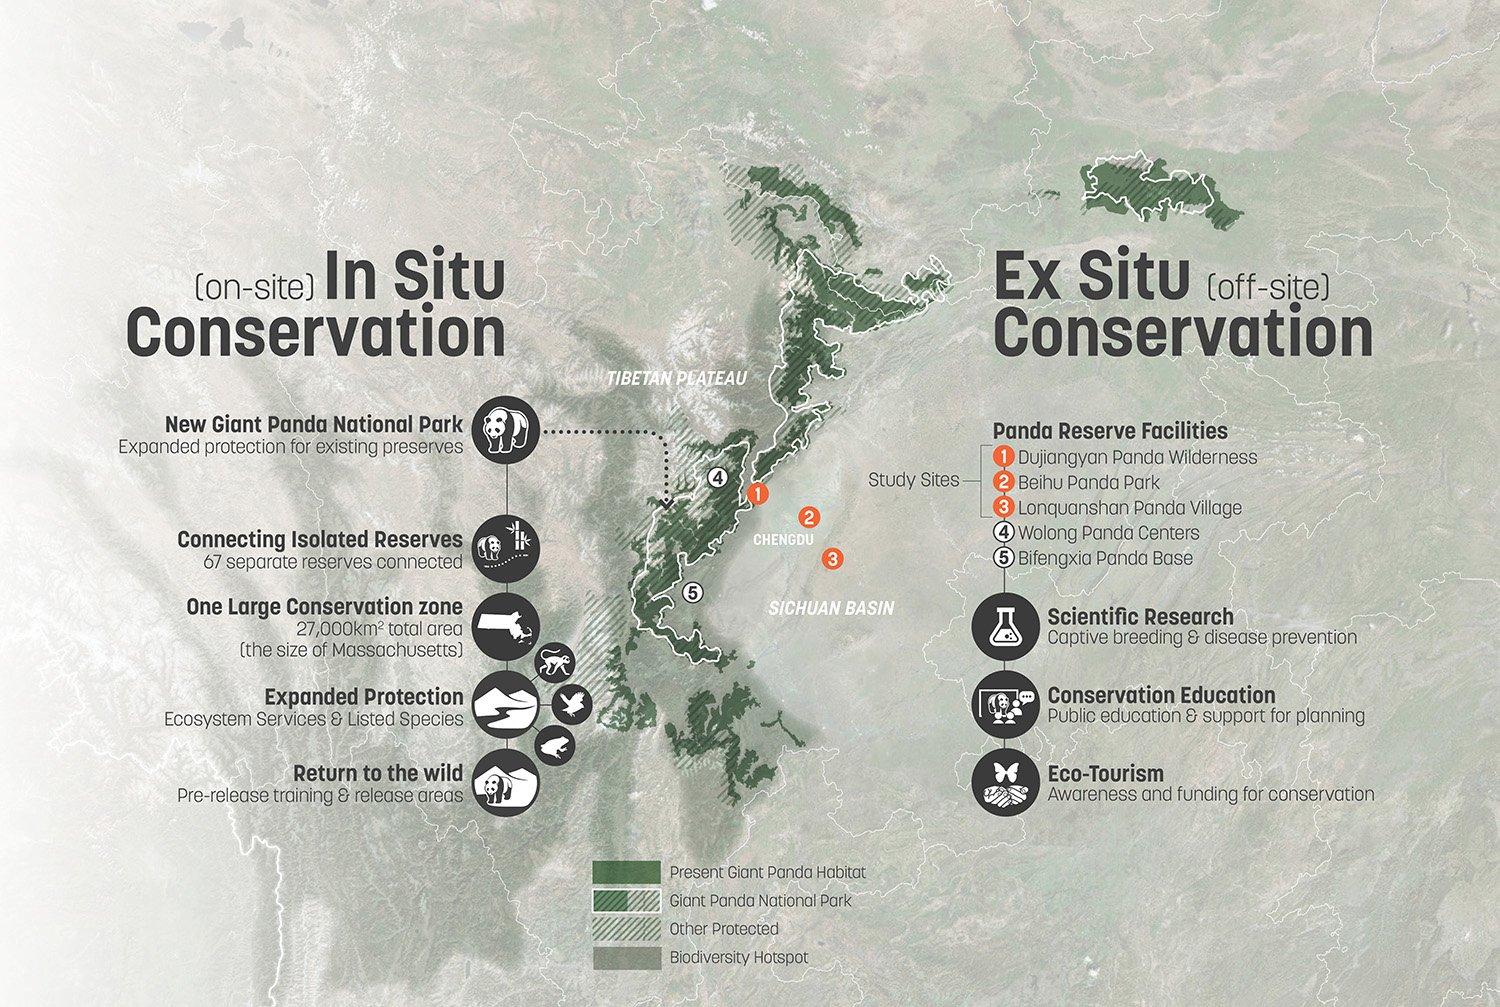 The Reserve's research, education, and eco-tourism programming supports China's new Giant Panda National Park, which connects over sixty previously isolated habitat preservation areas. SASAKI